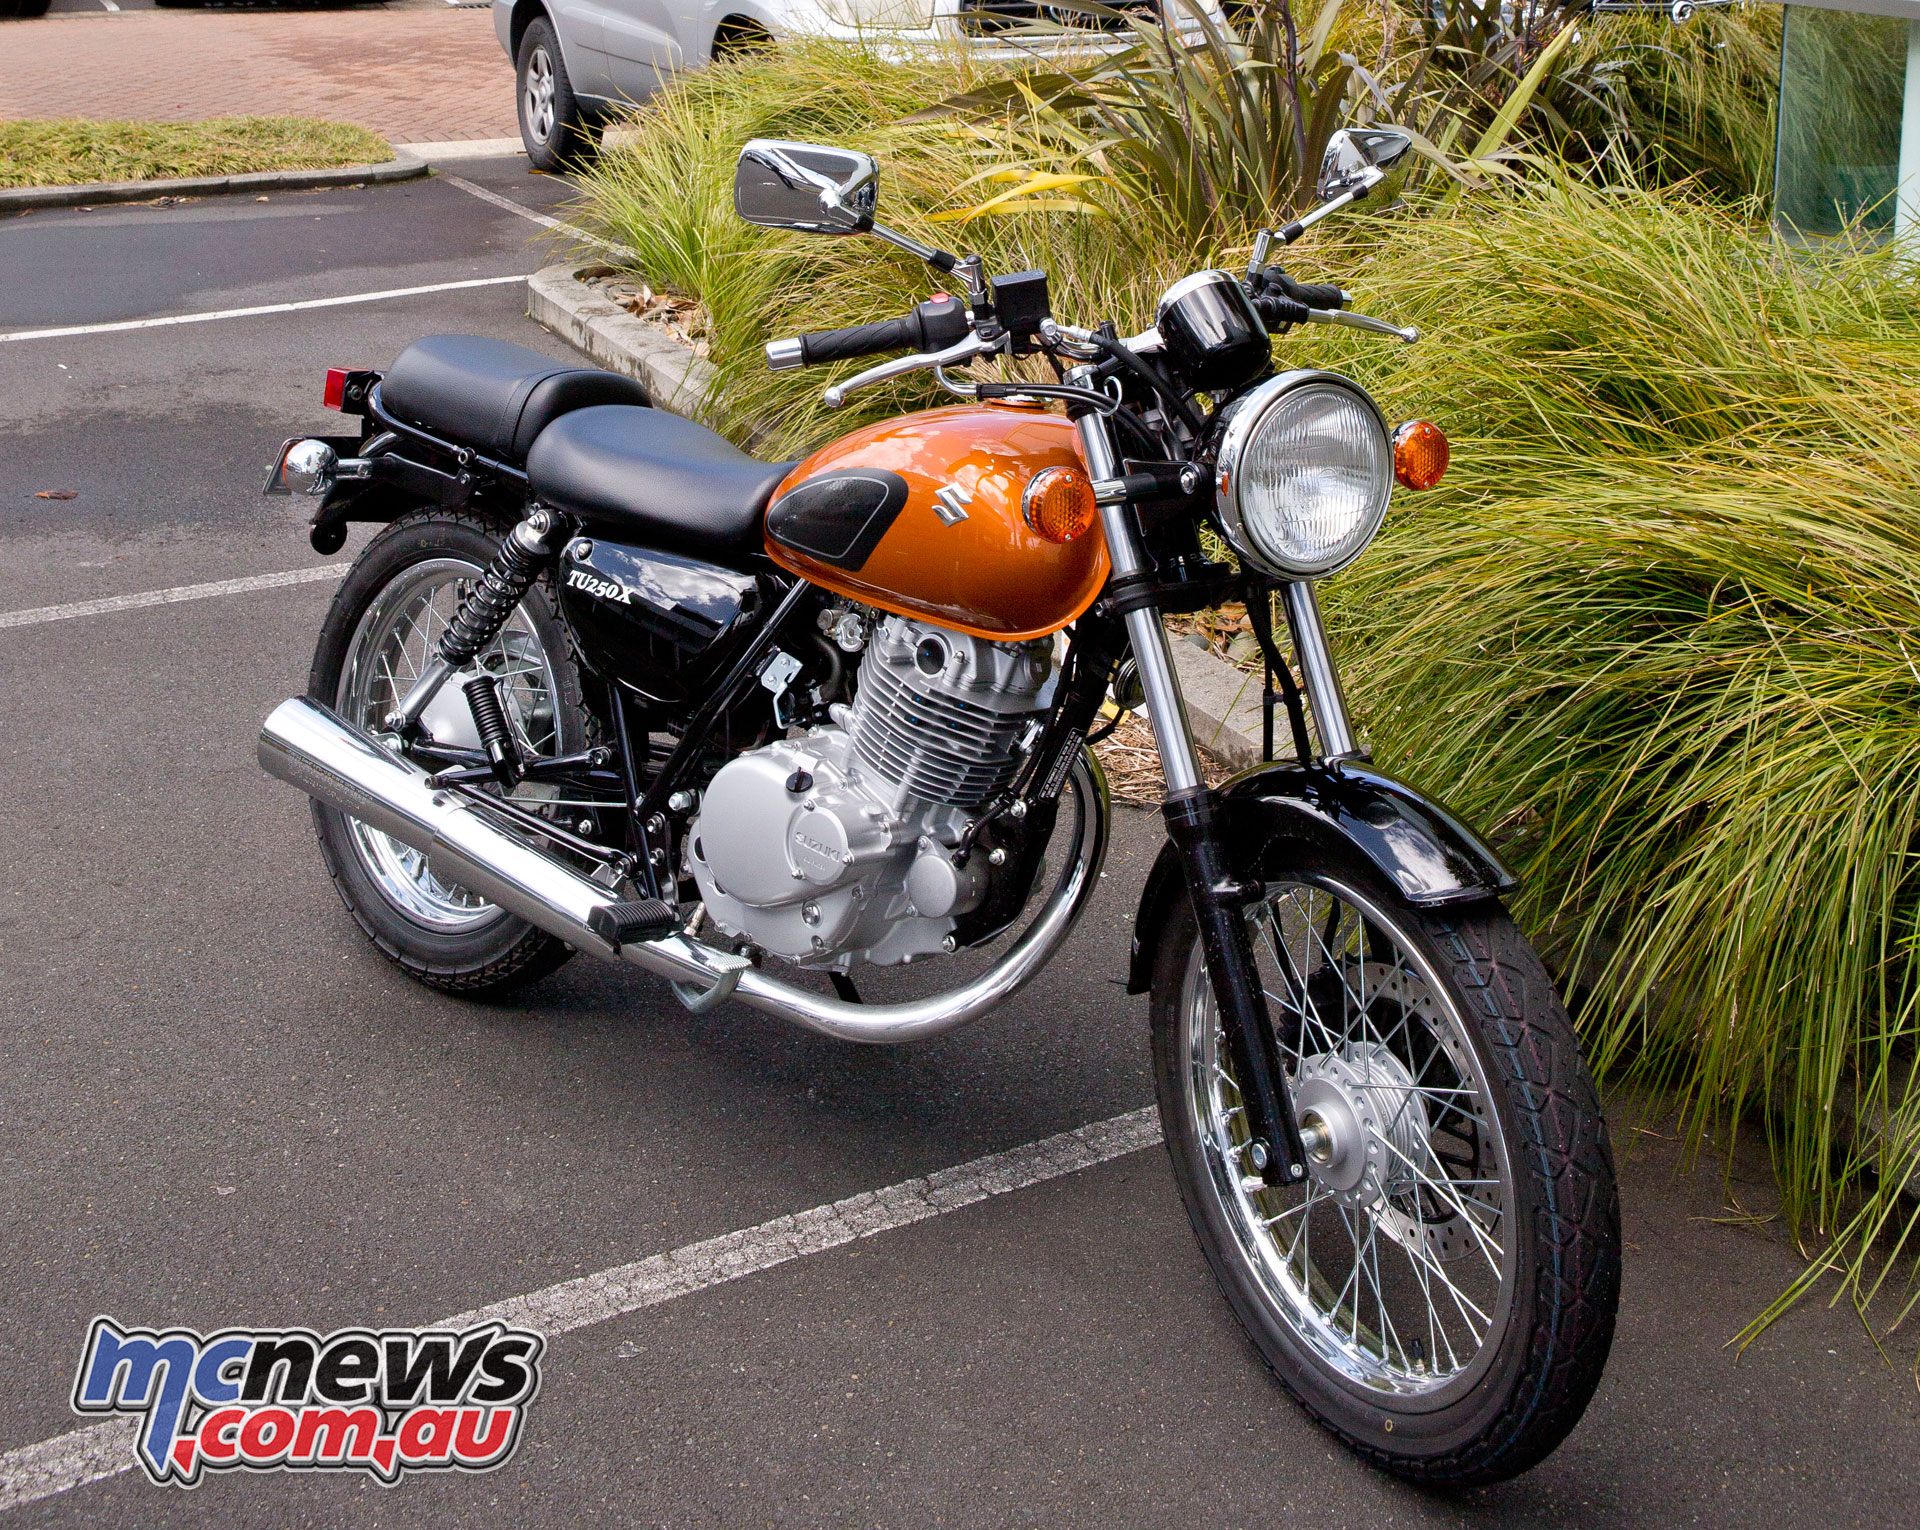 Suzuki 250 photo - 3